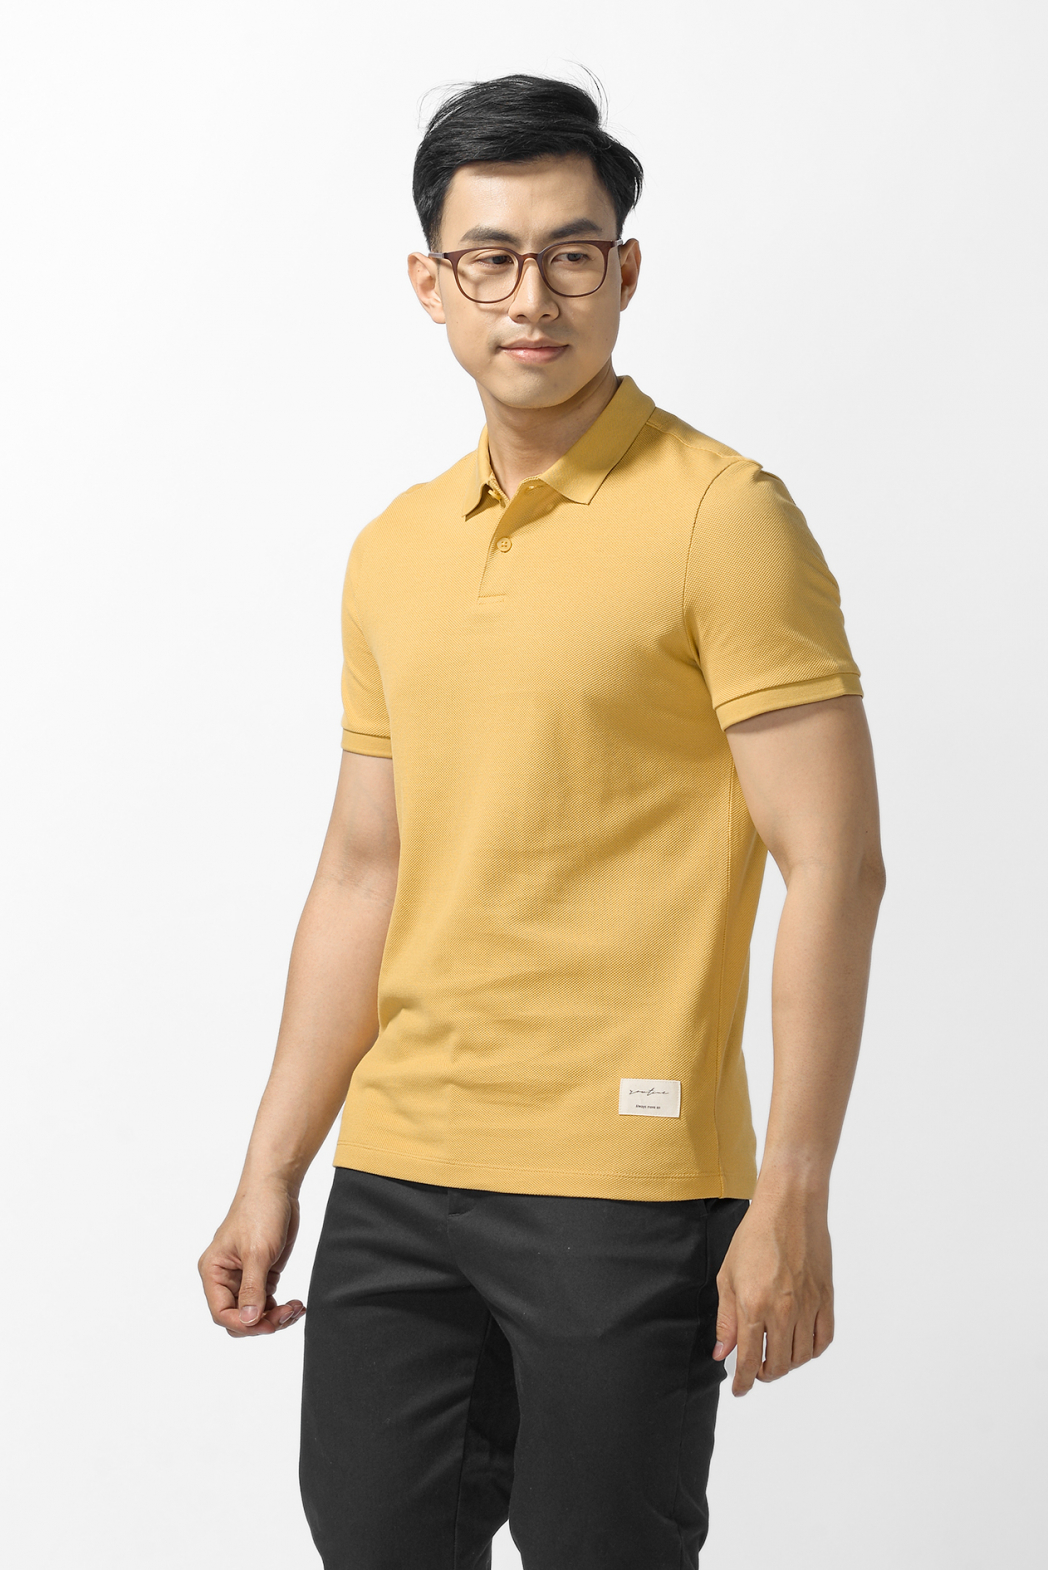 Áo Polo basic, Point label. FITTED form - 10F20POL026